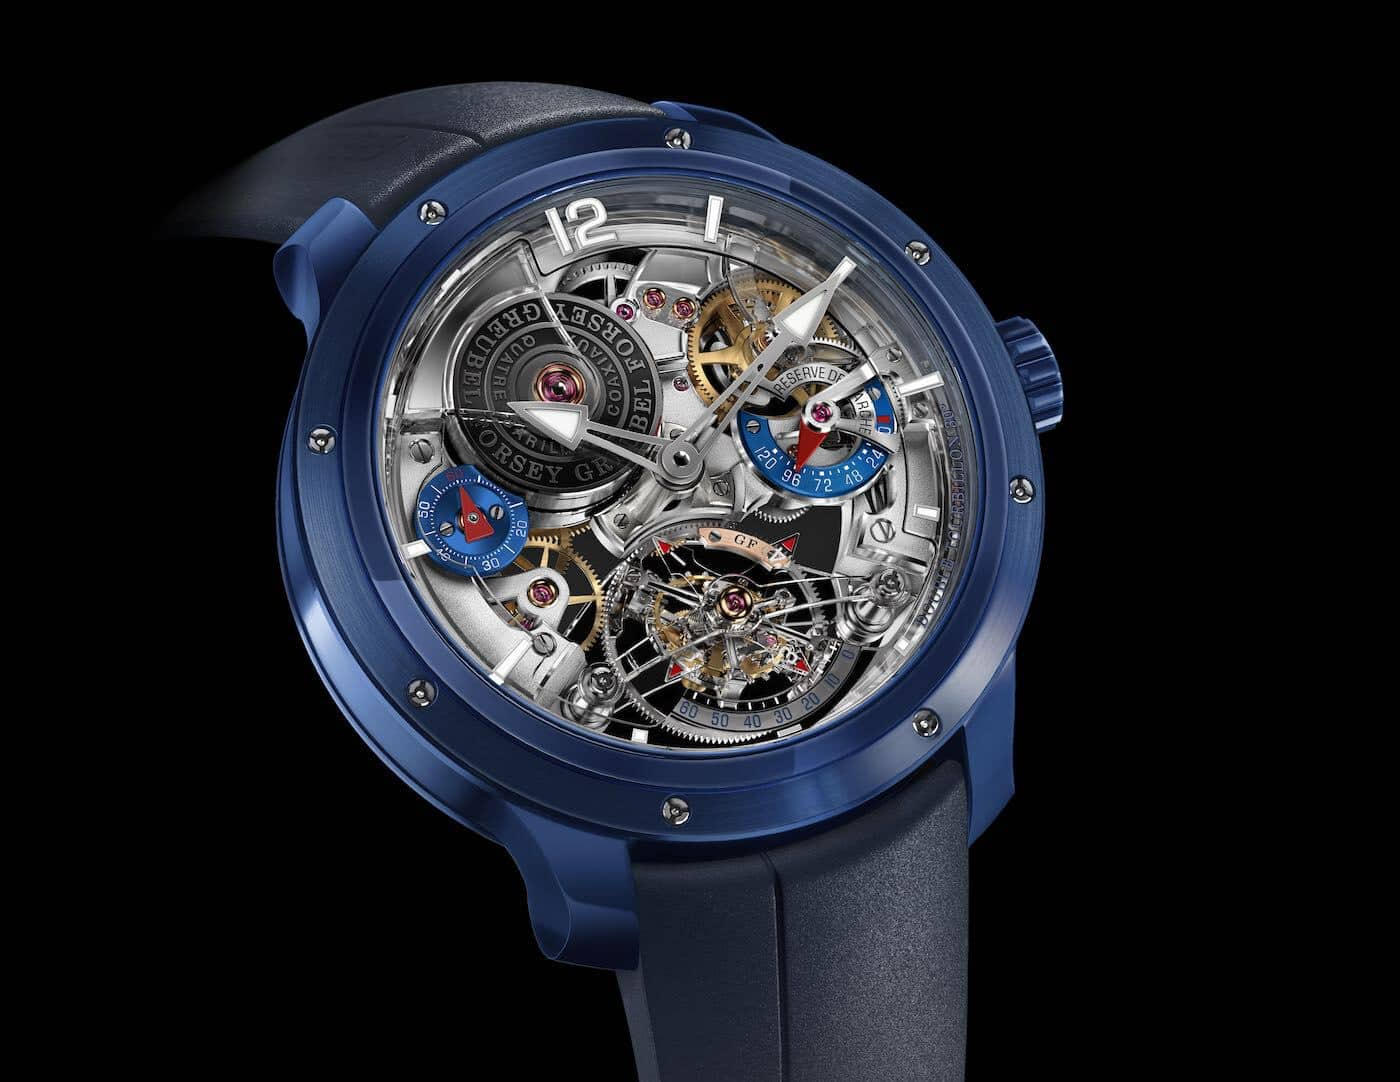 The First Ever Double Tourbillon 30° Watch from Greubel Forsey In Ceramic